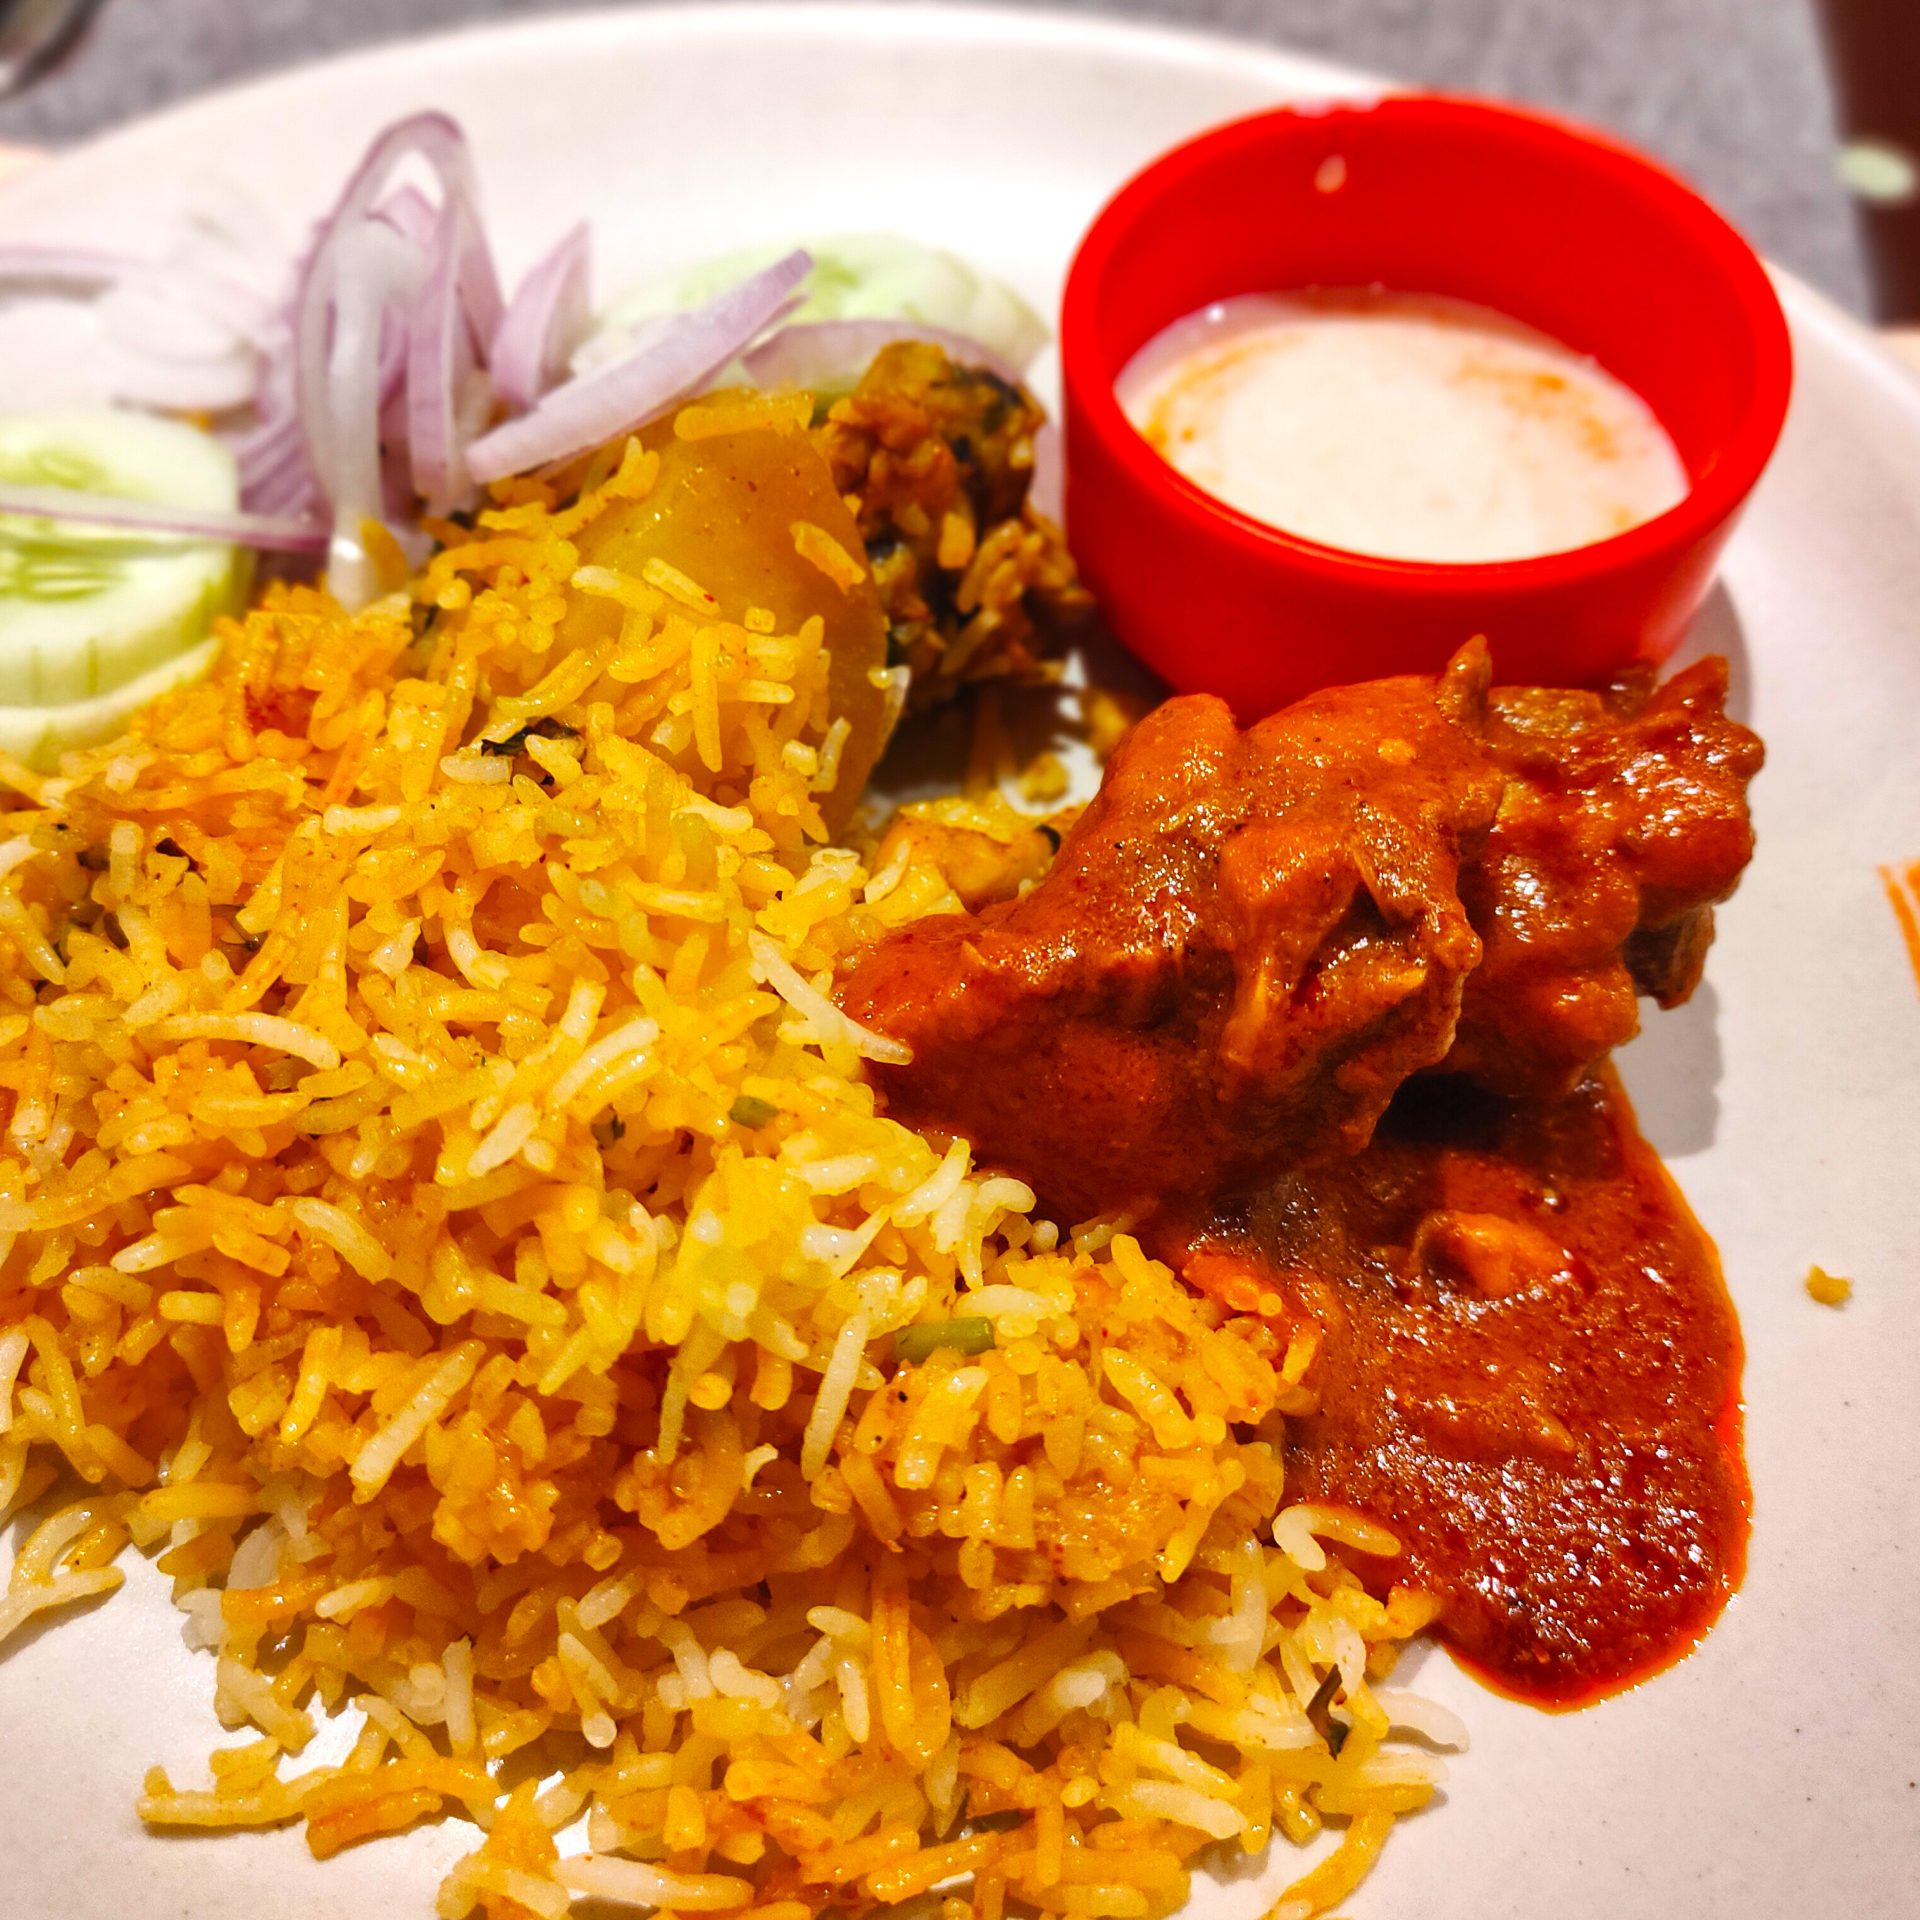 BBQ Nation - CHICKEN DUM BIRYANI, KADHAI CHICKEN, Green Salad, Raita